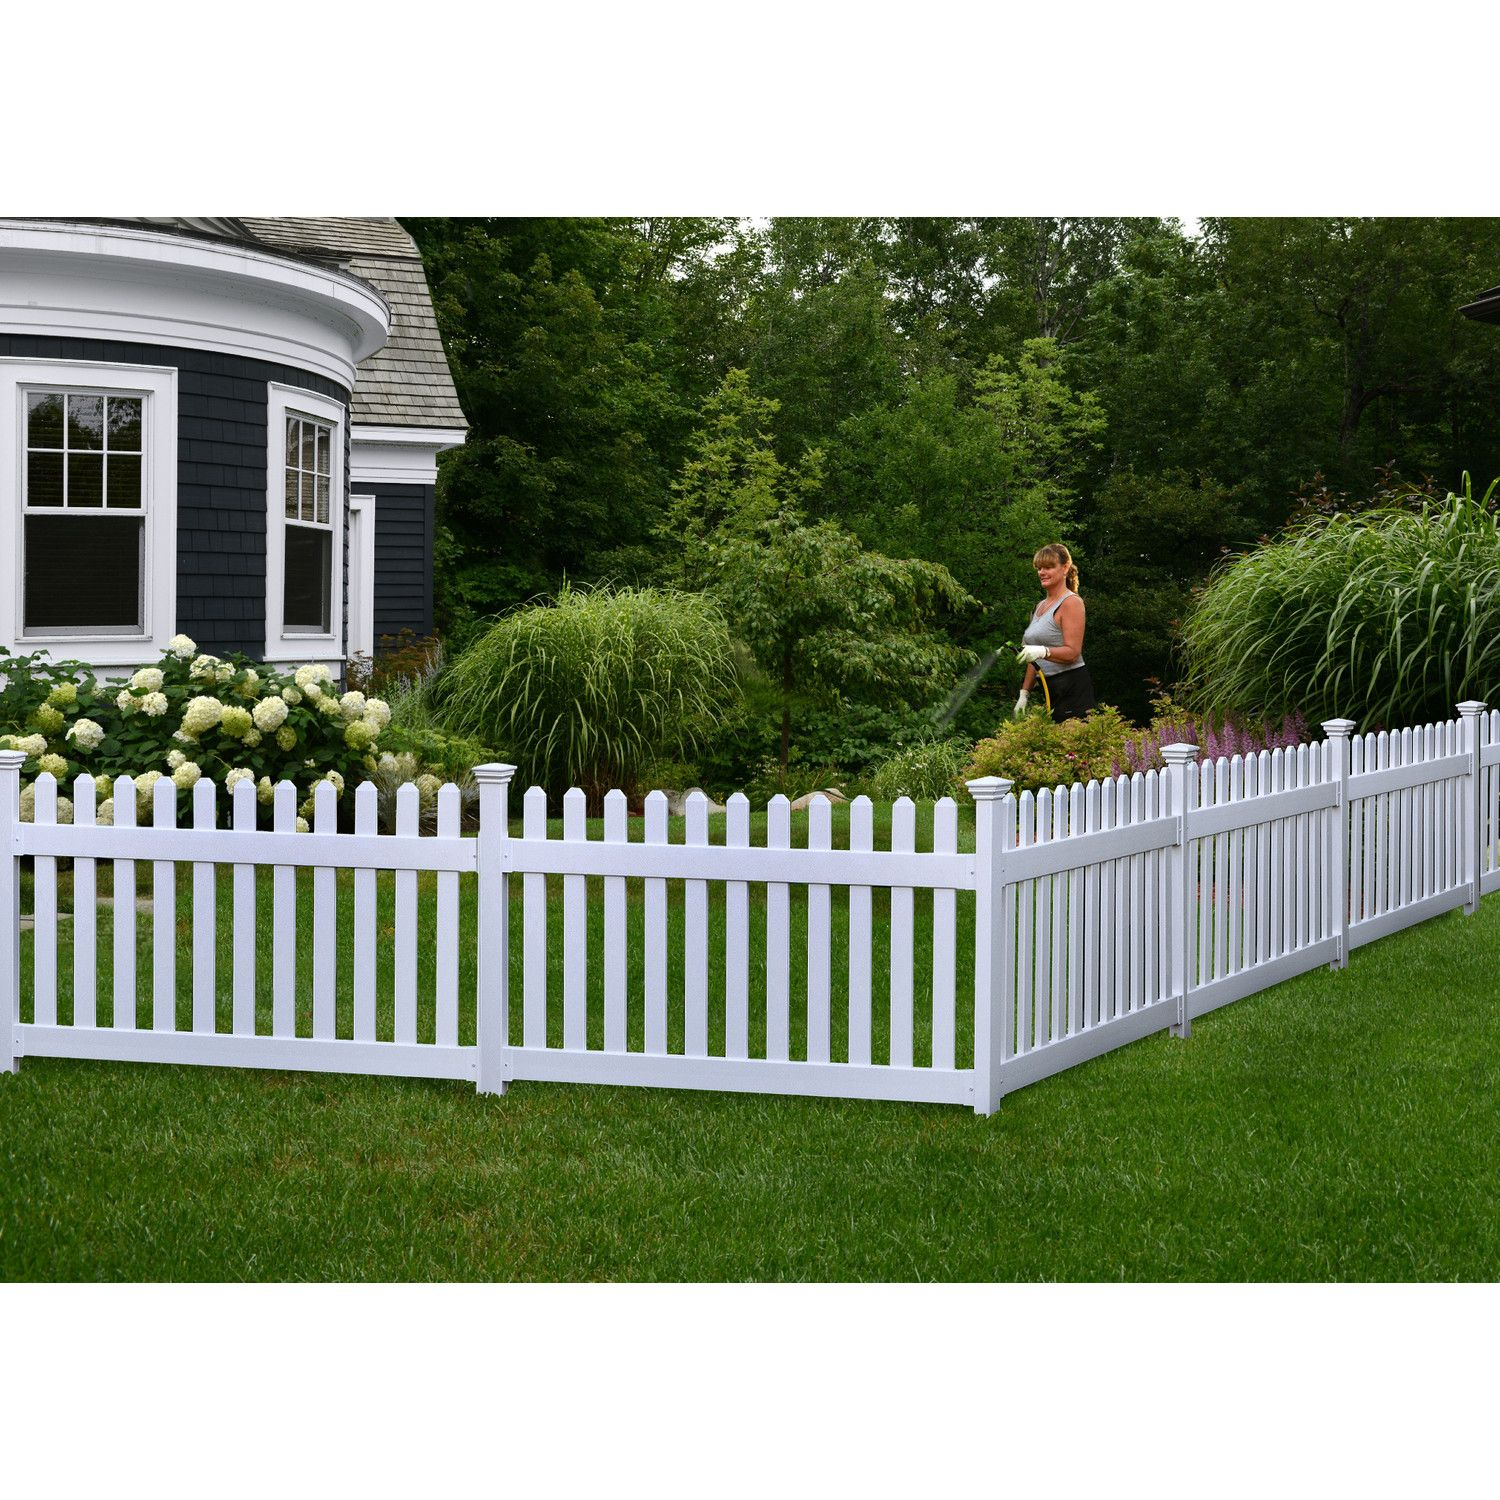 White picket fence | House in my Dreams | Pinterest